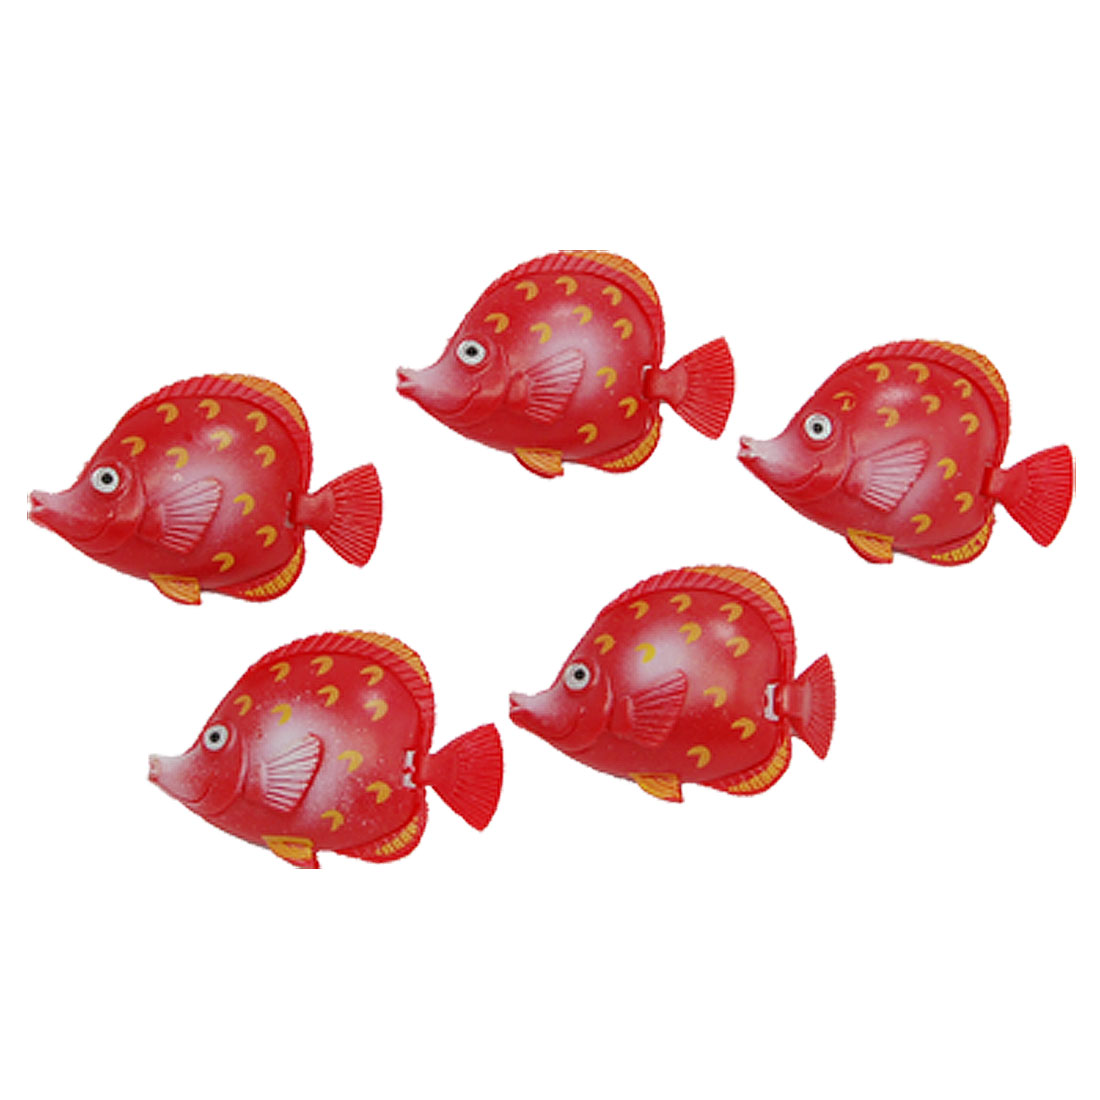 Real-like Red Plastic Floating Fish Aquarium Tank Ornament